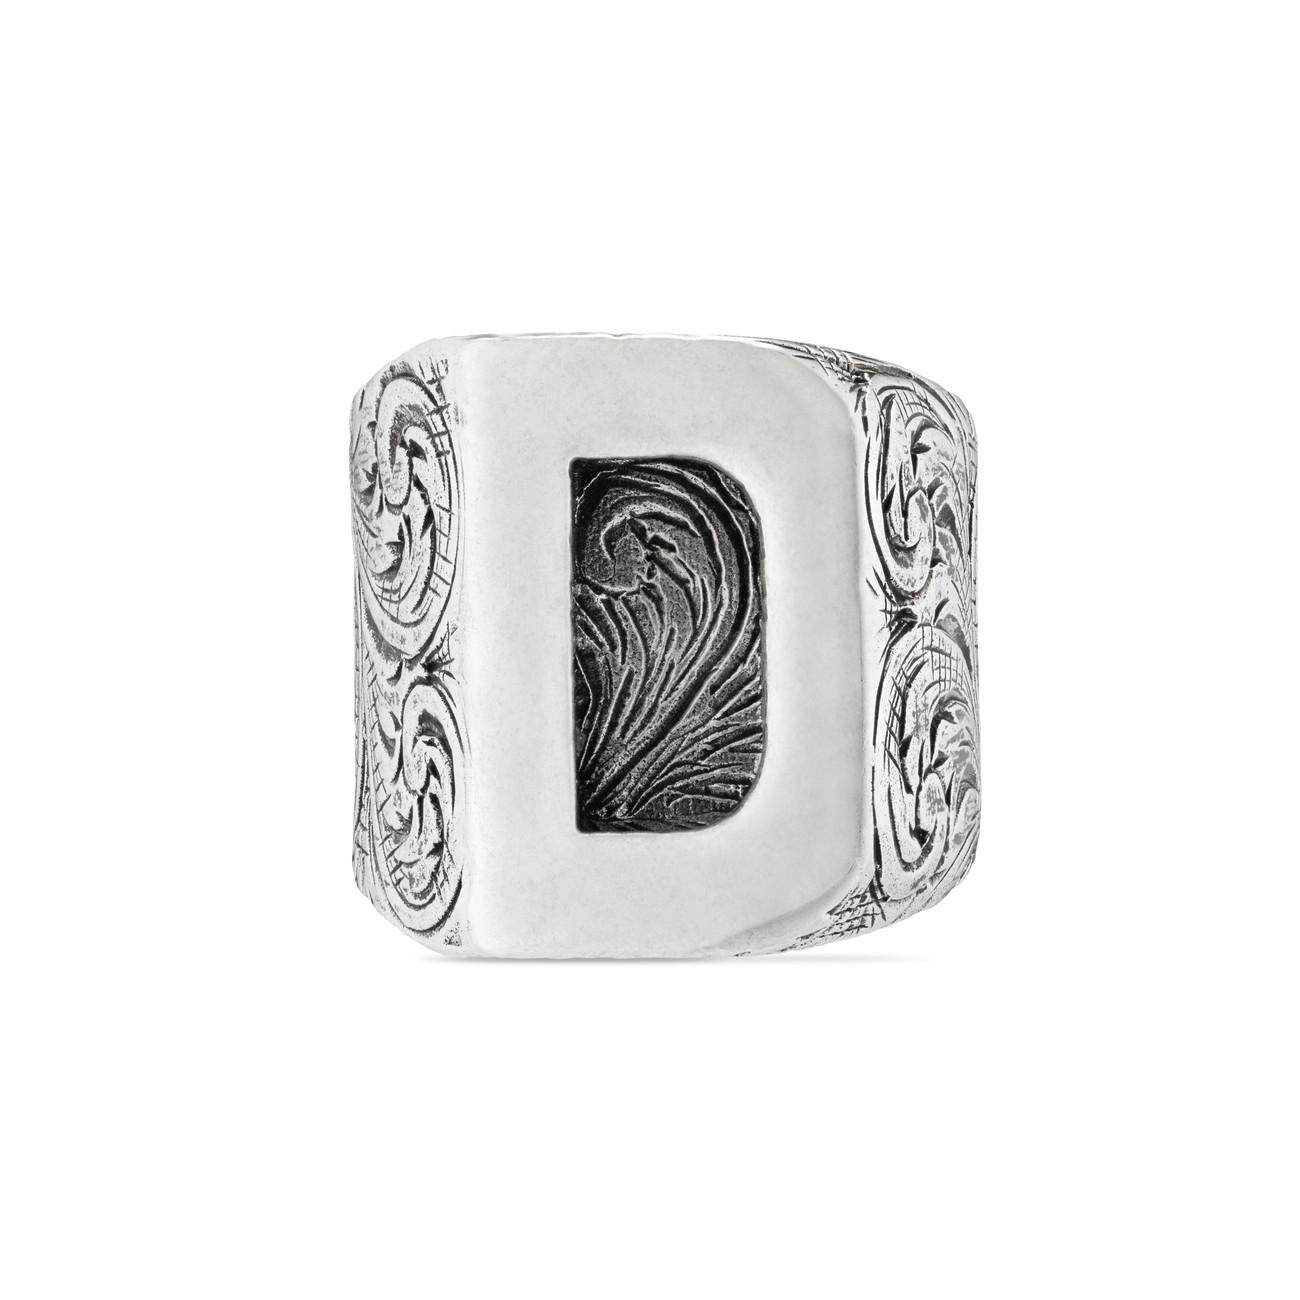 f9261498c1c Lyst - Gucci D Letter Ring In Silver in Metallic